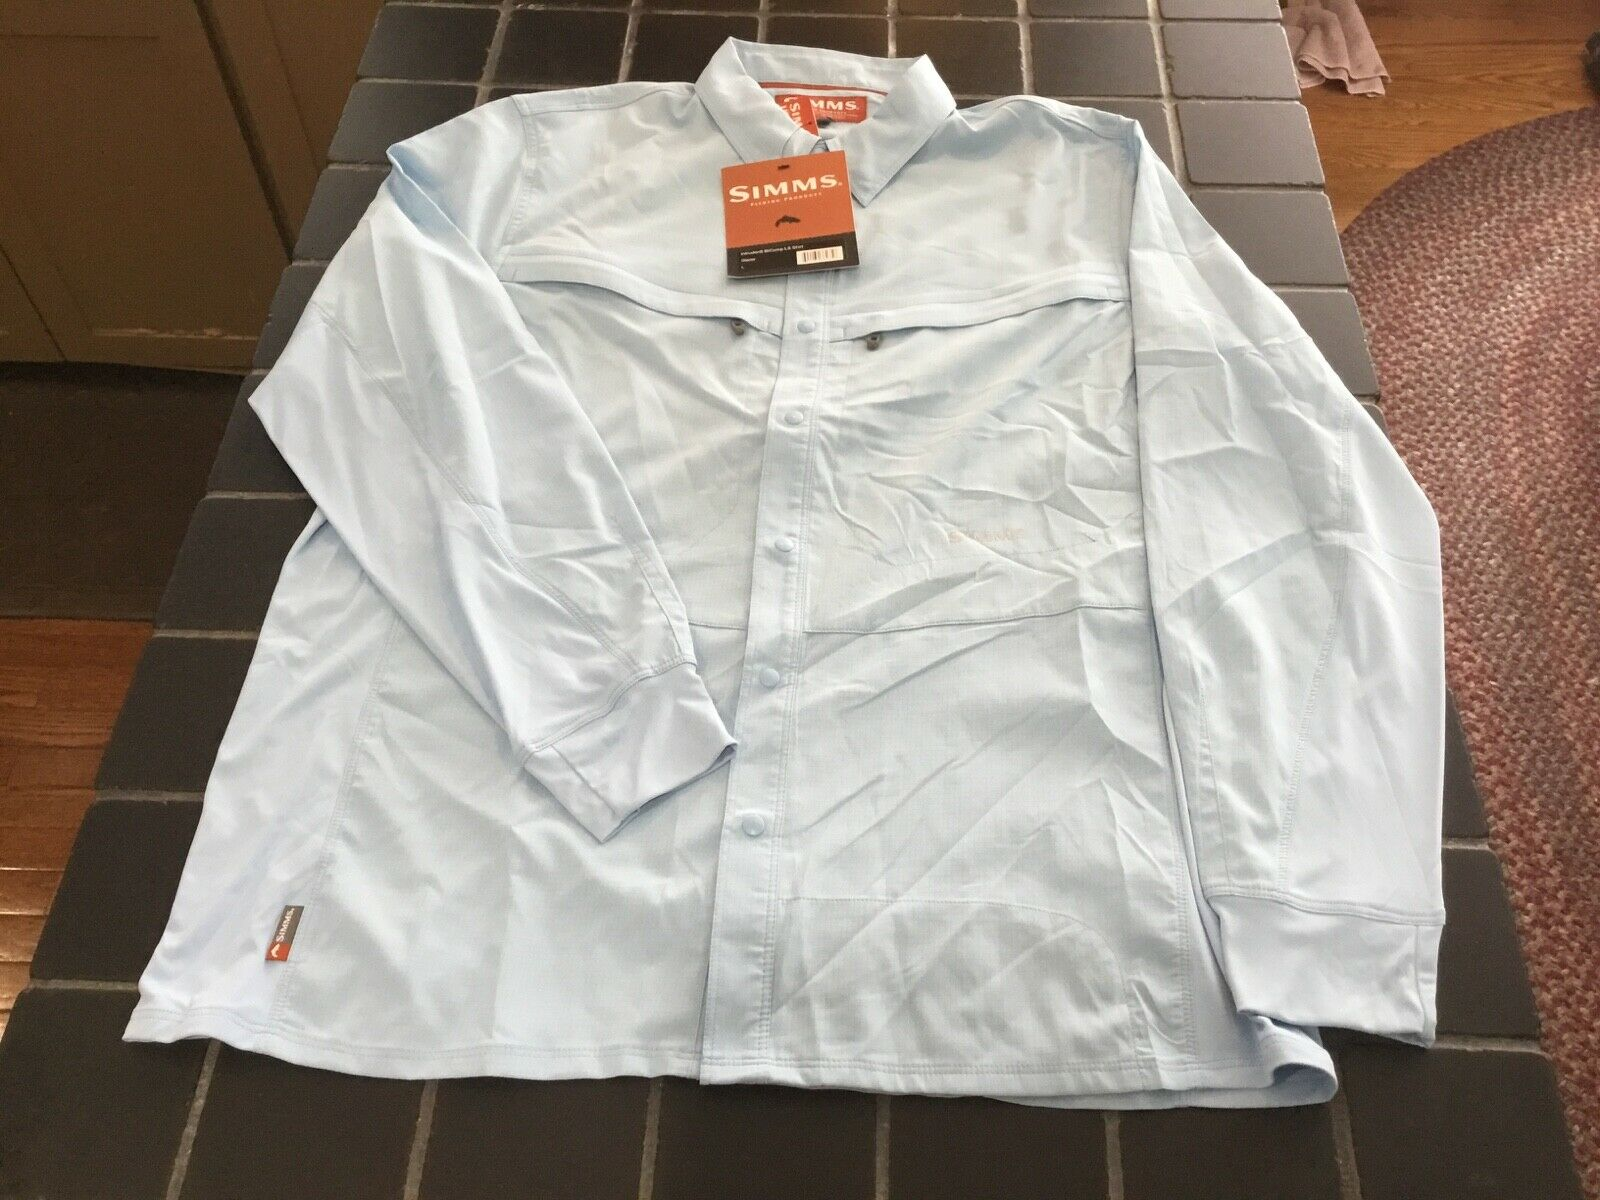 NWT Simms Fishing Intruder BiComp LS Shirt, Size  L, Glacier color Fishing Shirt  welcome to choose